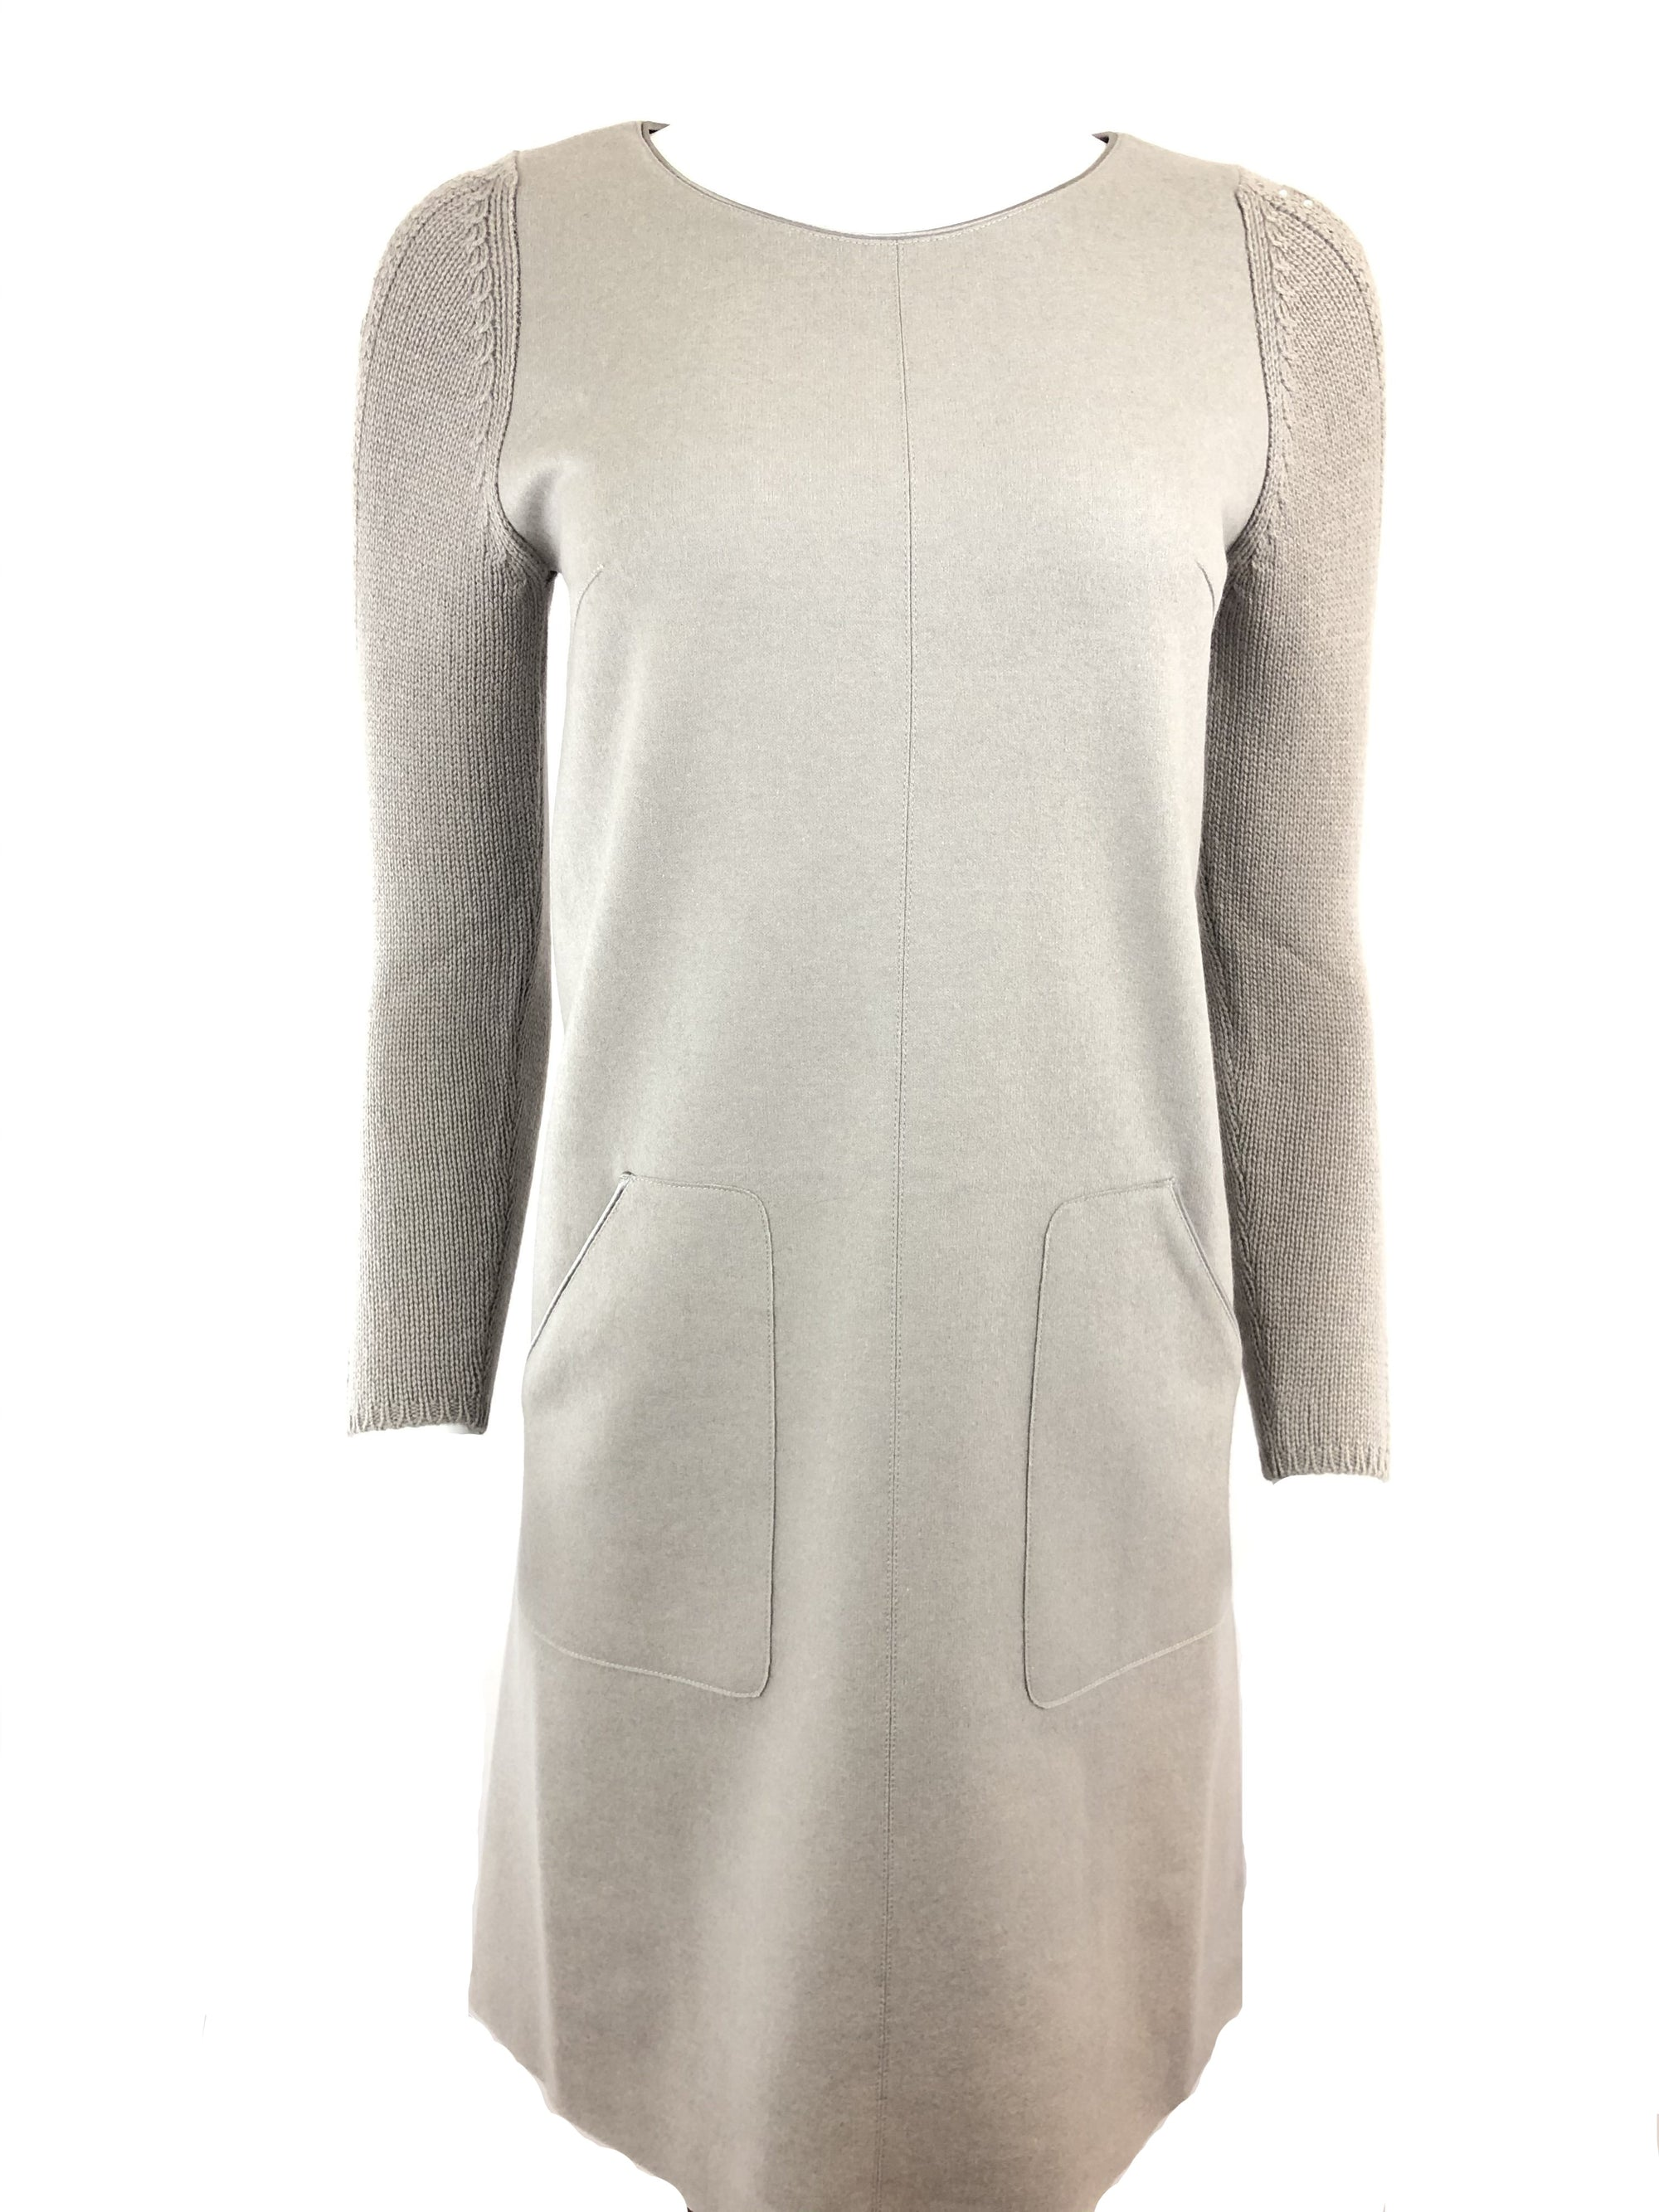 TONET DRESS IN TAUPE